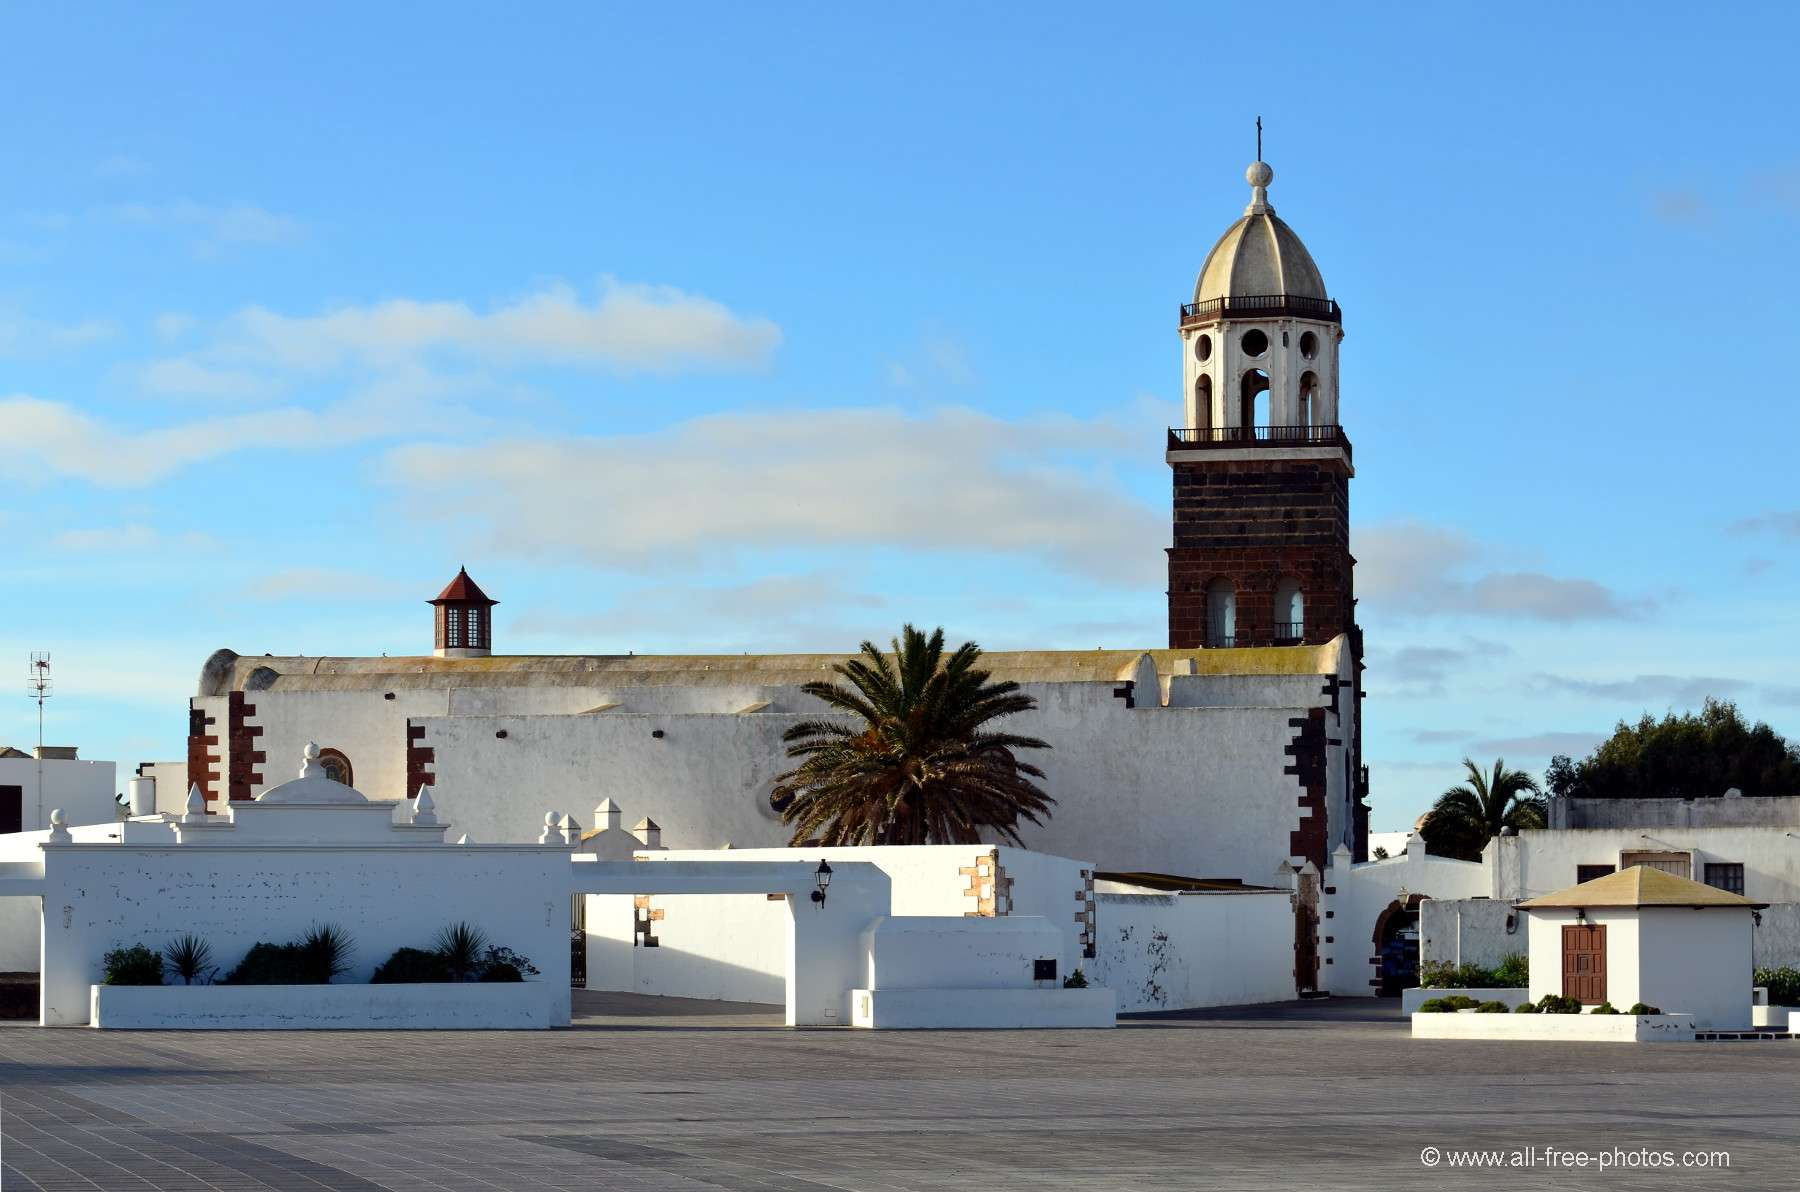 Teguise - Lanzarote - Canaries